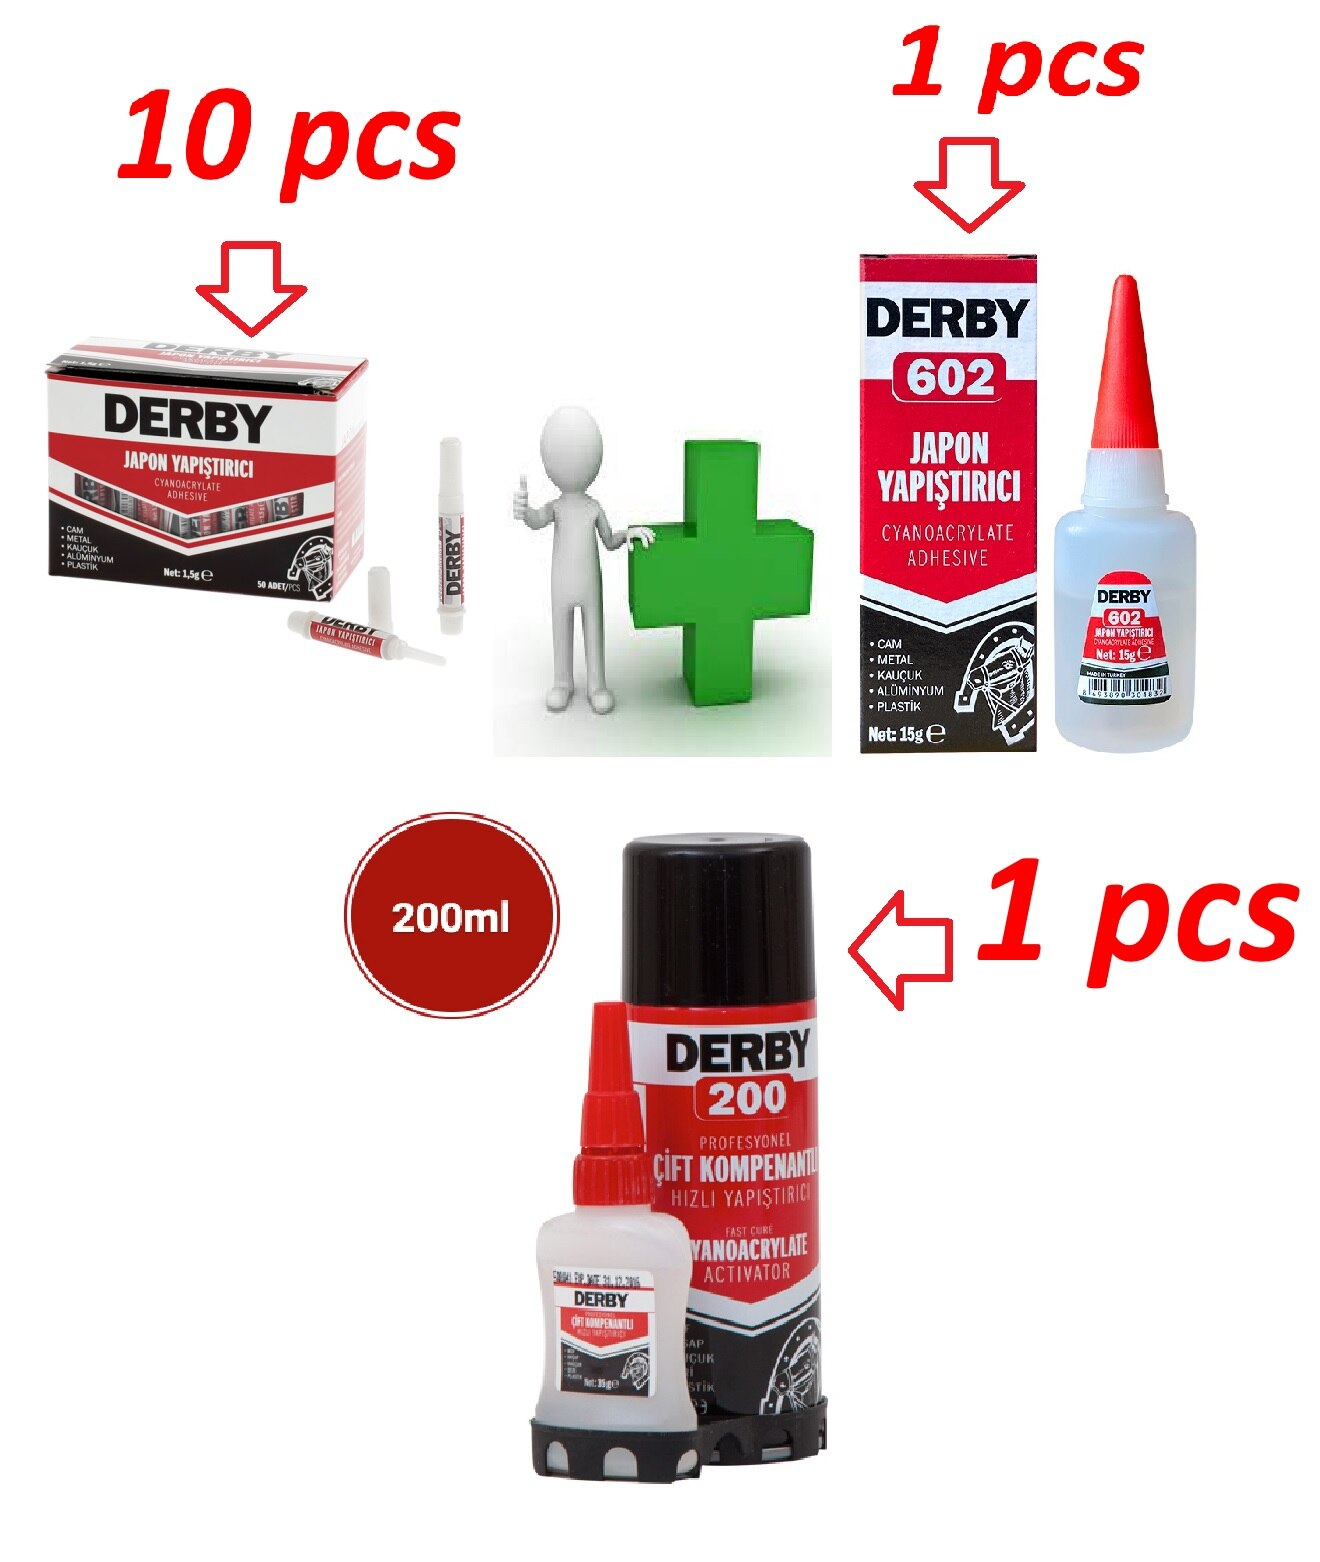 10 pieces of 1.5g superstructure adhesive, 1 piece of 20 g 602 strong adhesive, 1 piece of double compound 35 g + 200 ml